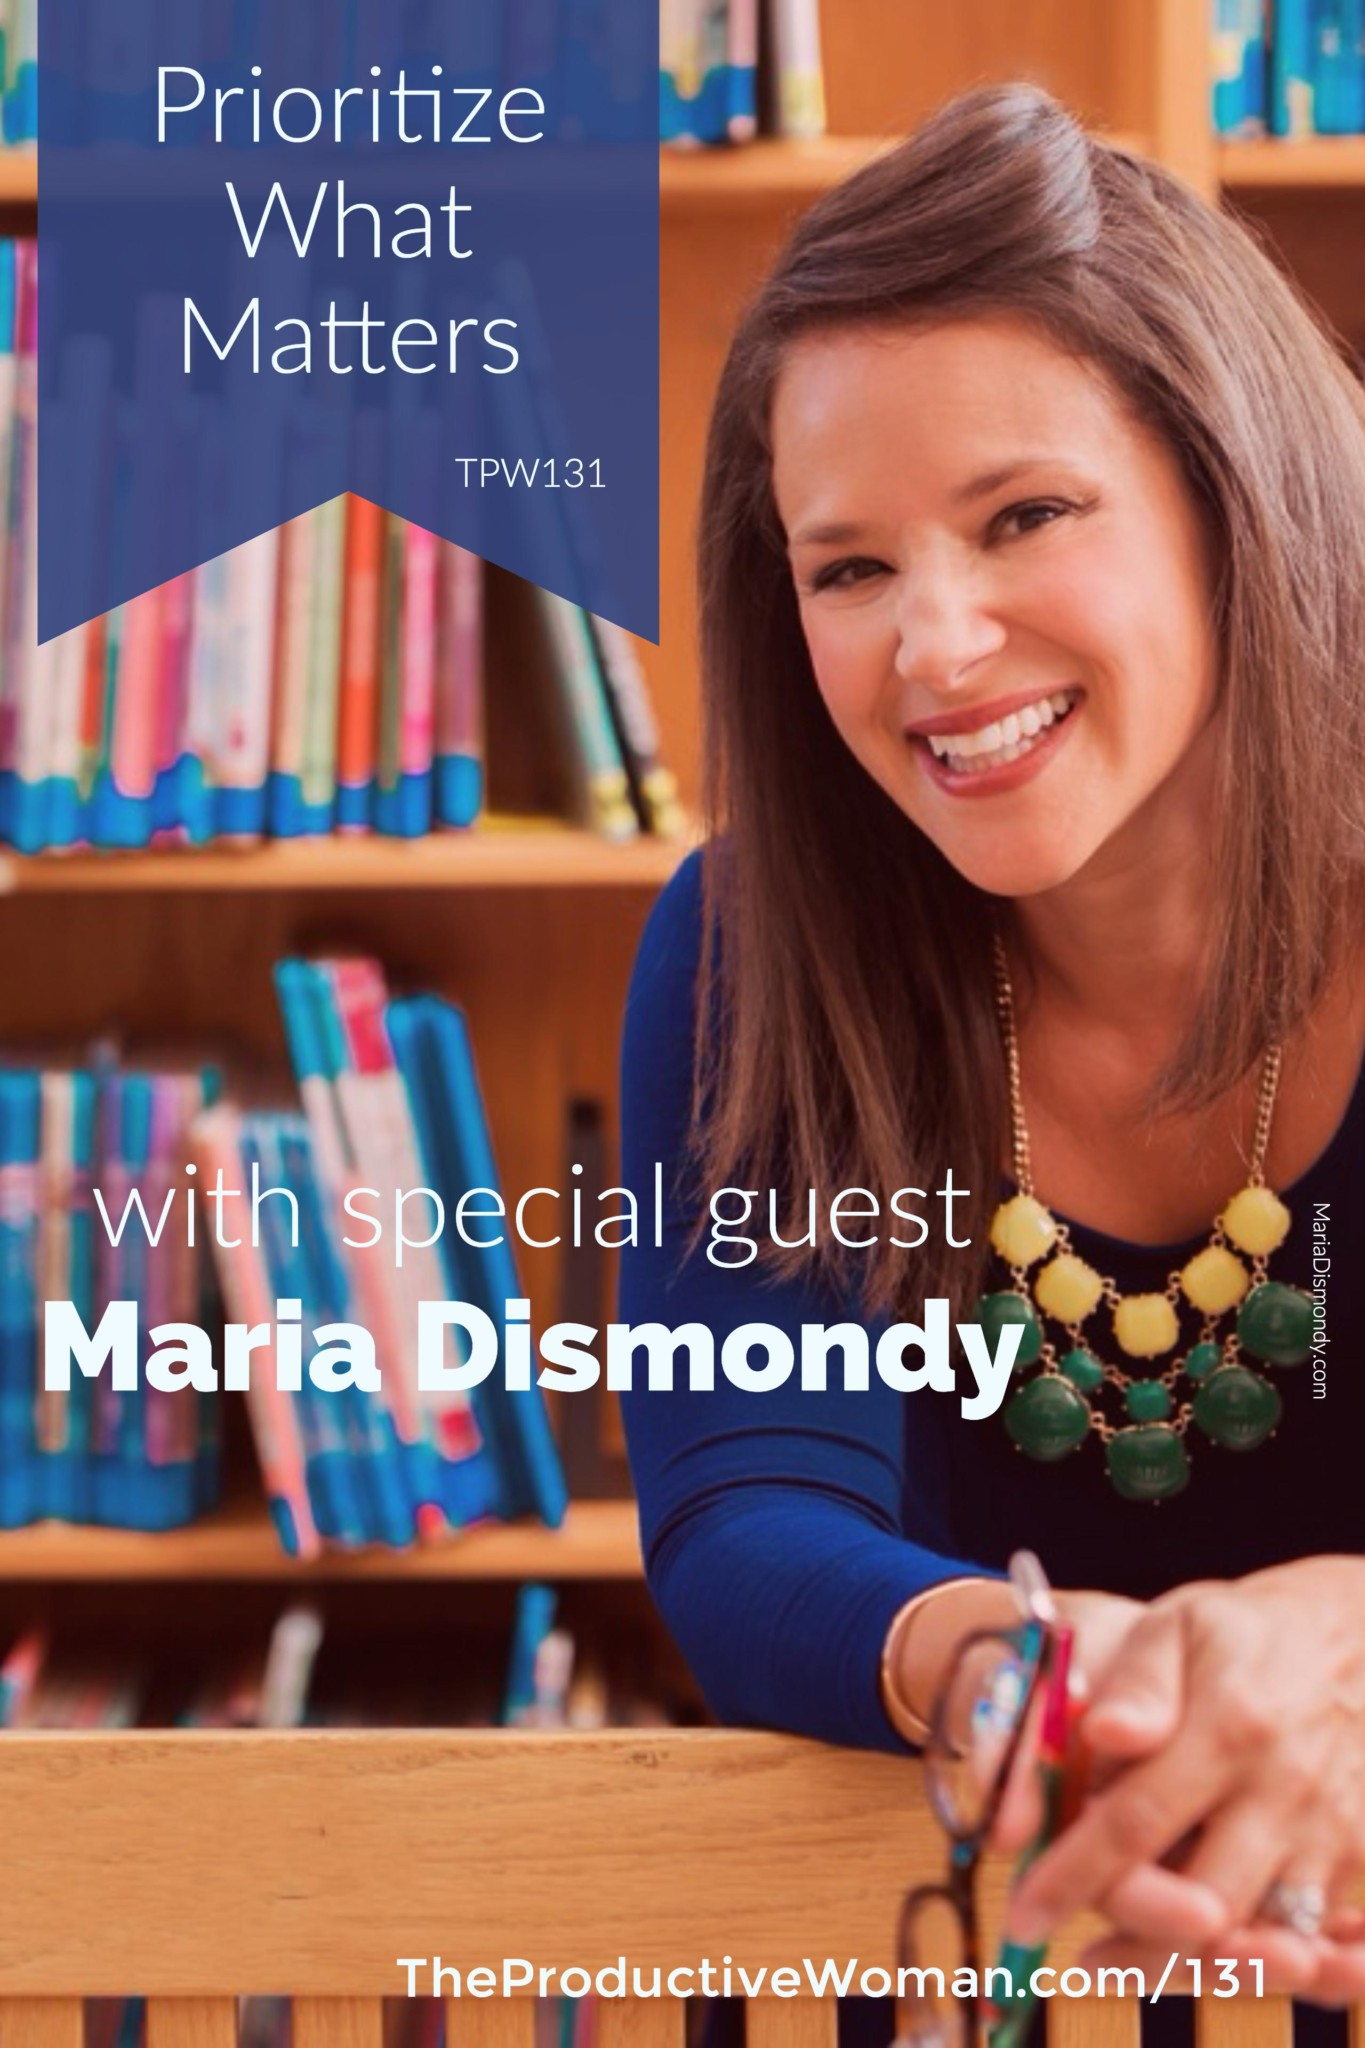 In episode 131 of The Productive Woman podcast, award-winning children's book author Maria Dismondy shares how she's intentionally built her life around her most important priorities.   Visit theproductivewoman.com/131 to hear more.